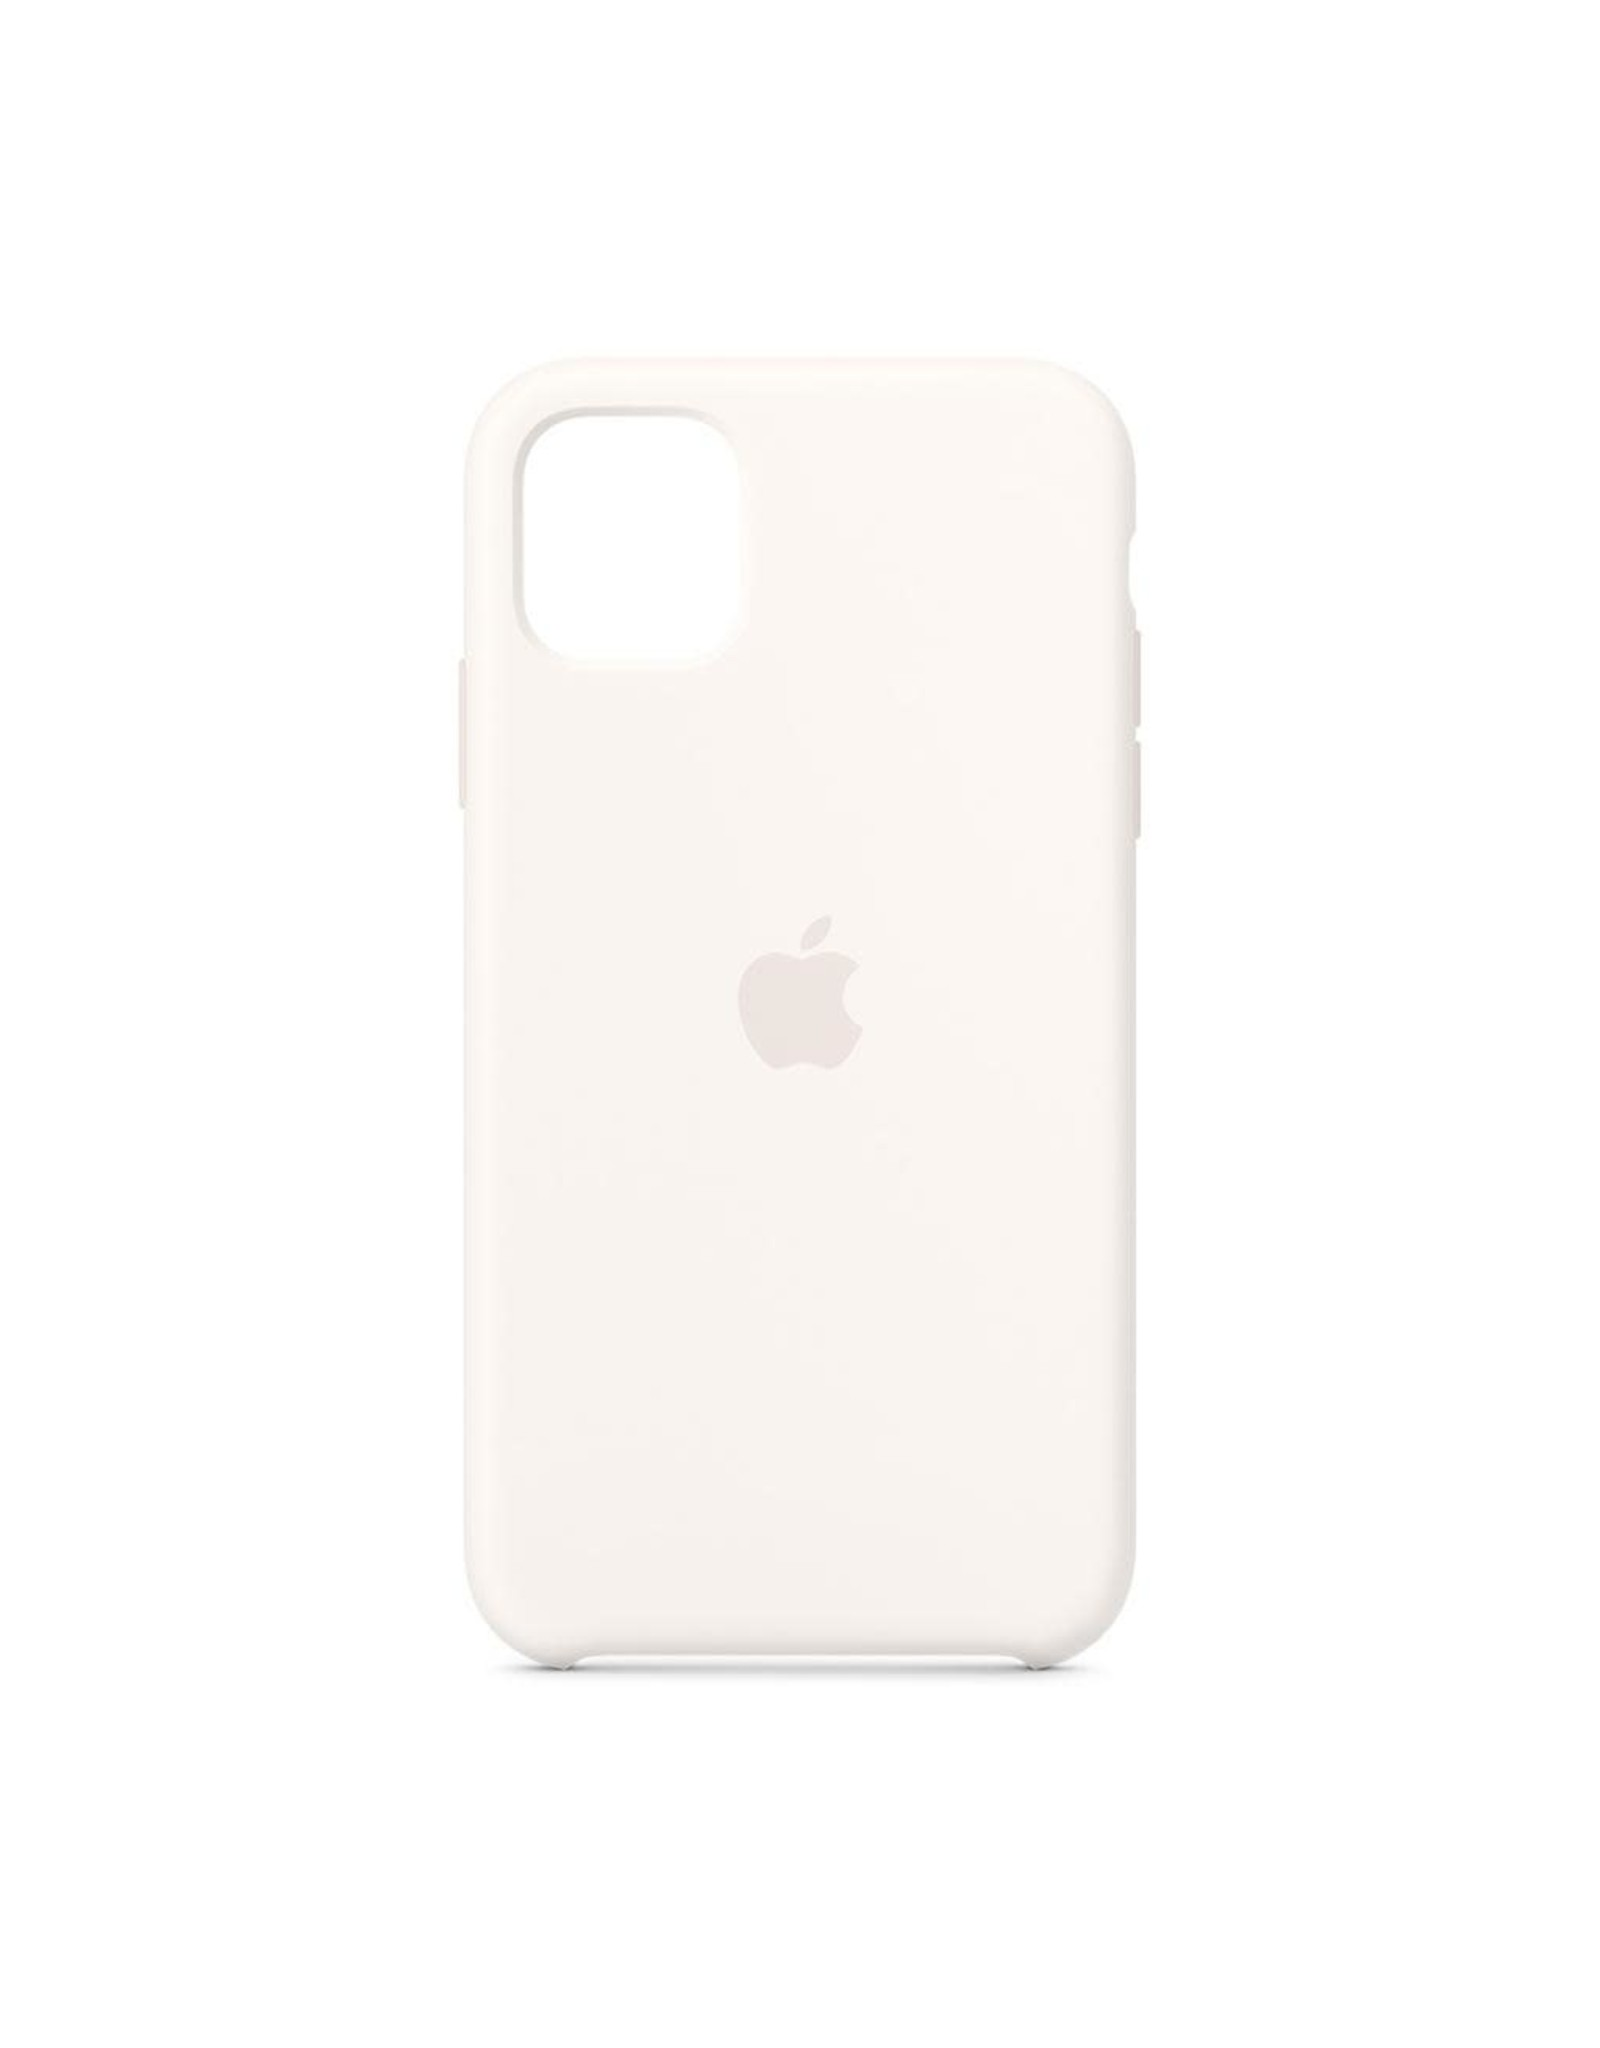 Apple Apple iPhone 11 Silicone Case - WHITE